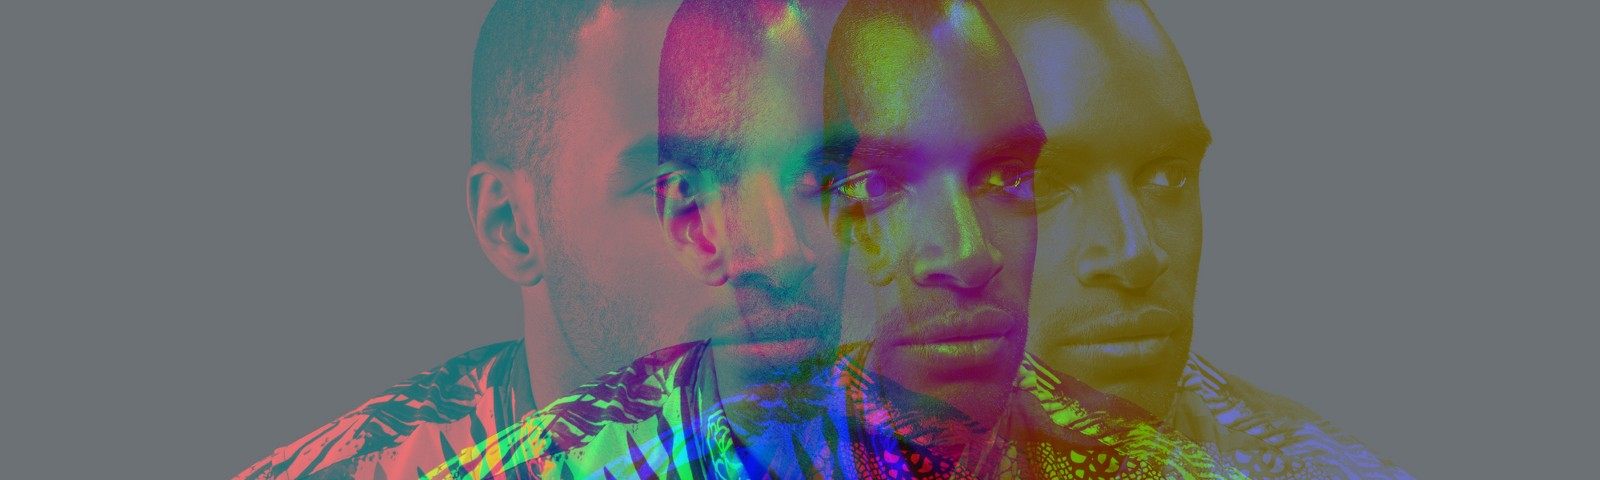 A multiple exposure photo of a Black man.